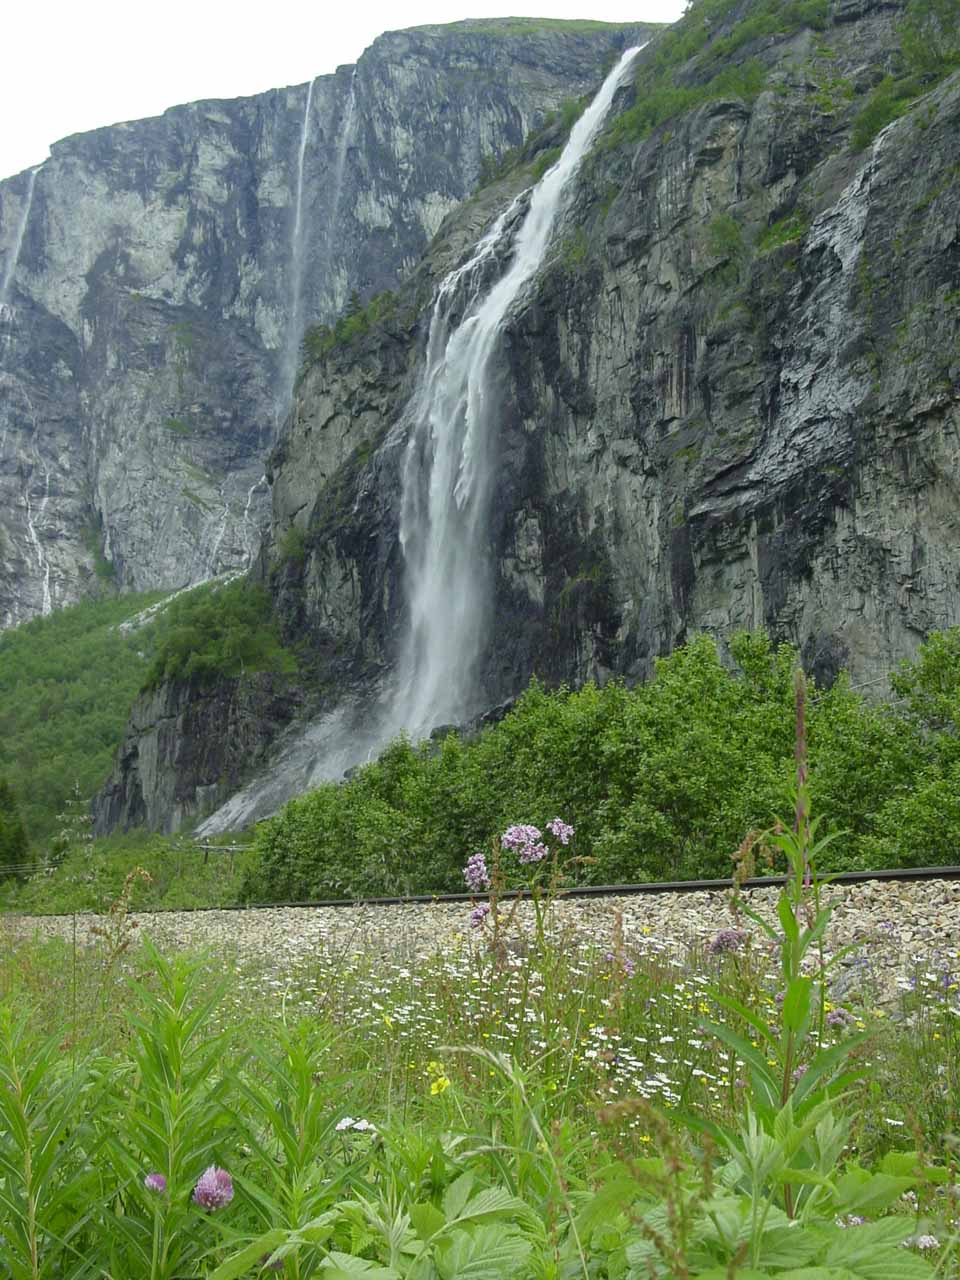 Finally starting to get a clean look at Gravdefossen and the numerous flowers blooming before it